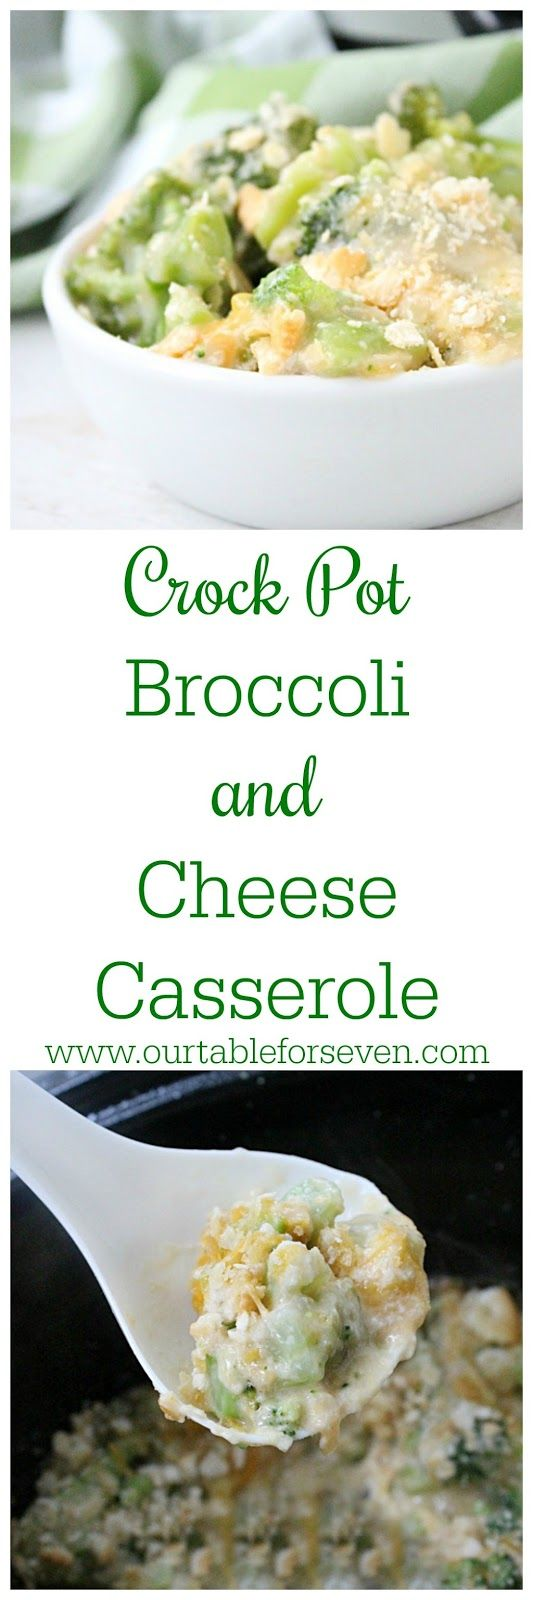 Crock Pot Broccoli and Cheese Casserole